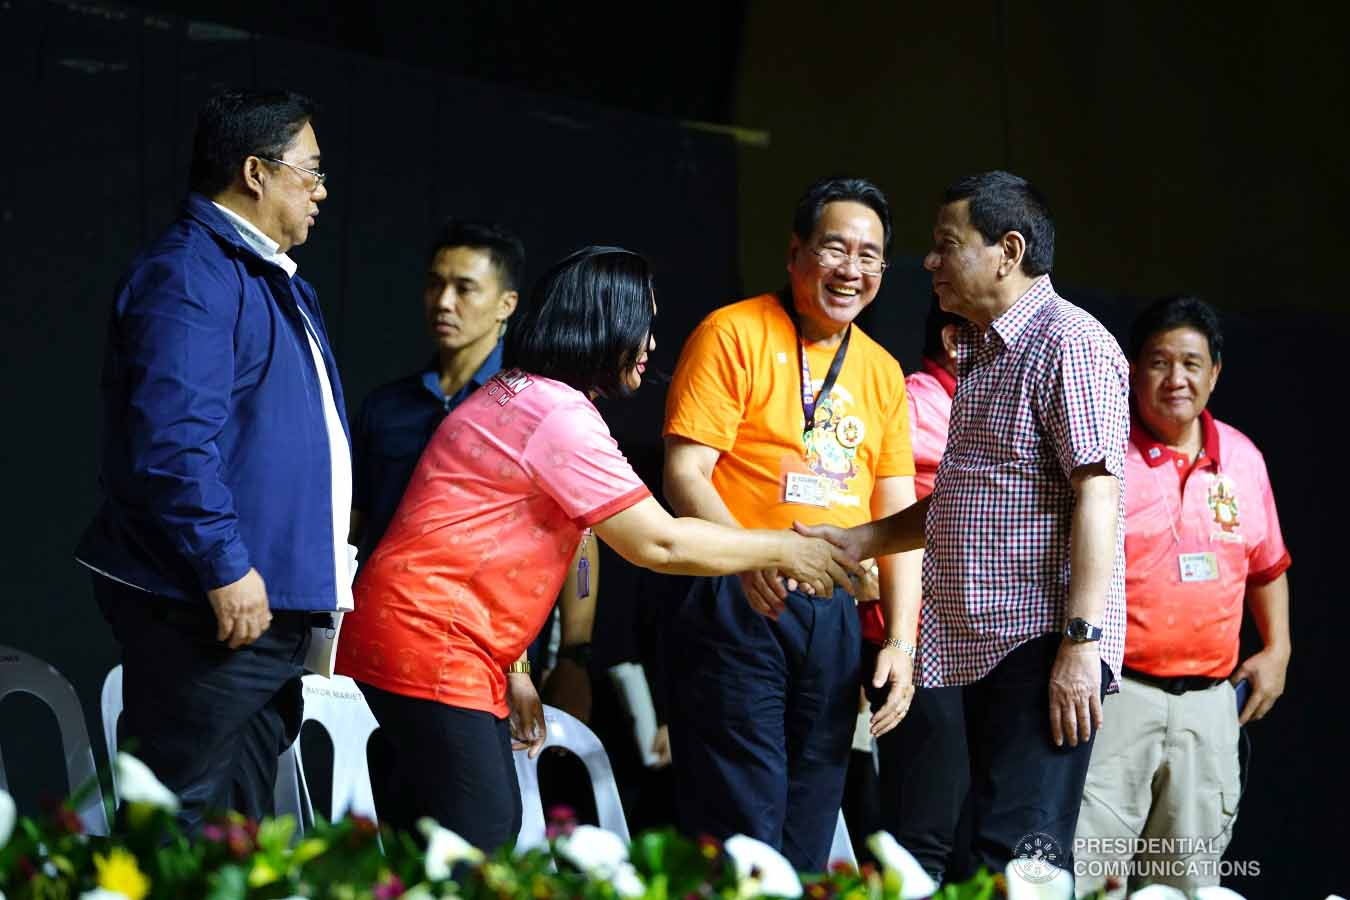 President Rodrigo Roa Duterte shares a light moment with some of the guests during the 4th Roa Clan Grand Reunion at the Limketkai Center in Cagayan de Oro City on January 25, 2019. JOEY DALUMPINES/PRESIDENTIAL PHOTO